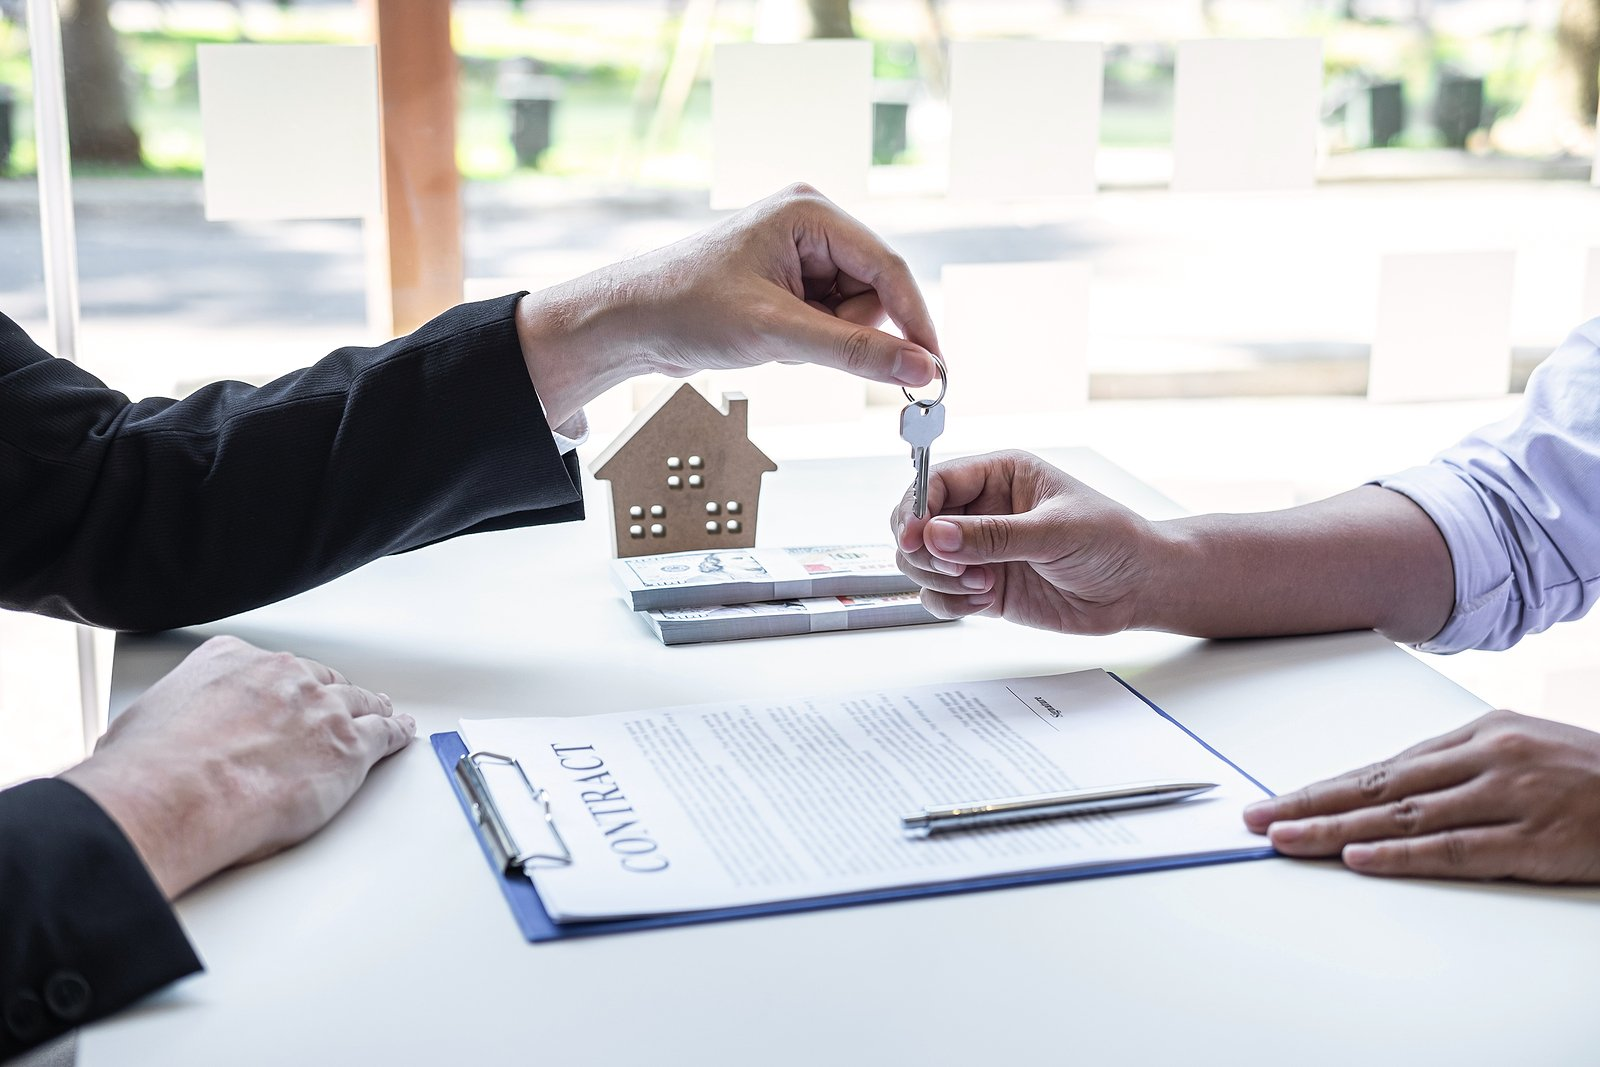 5 Ways To Make The Loan Process Go Faster